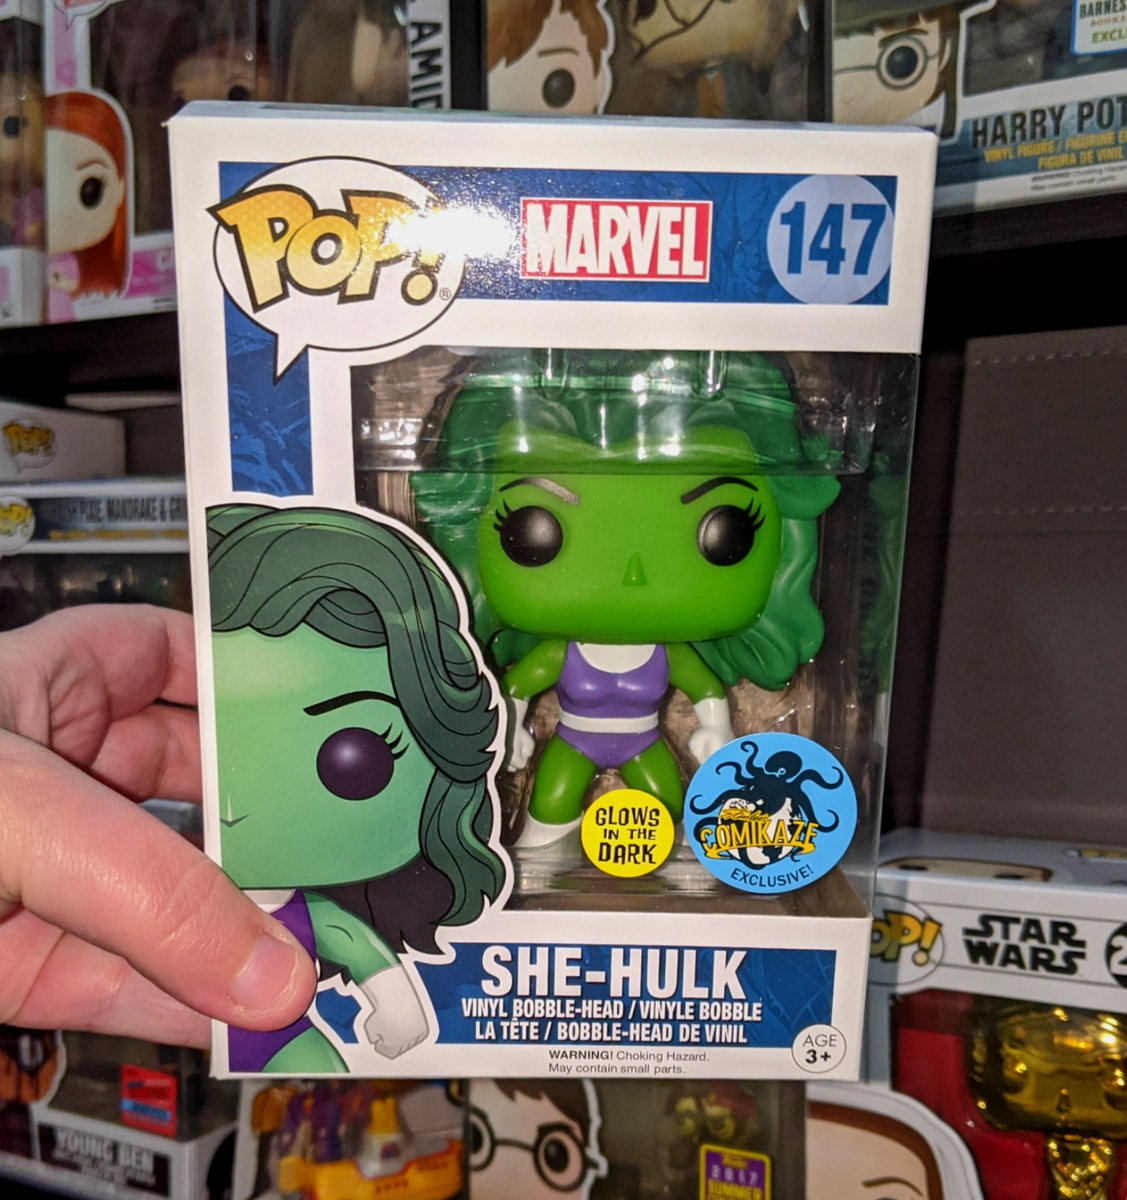 I really need @Funko to come out with more Drag Queen Funko Pops! Really loving this new @KameronMichaels Pop though 😂😉 #dragrace #shehulk #driveindrag